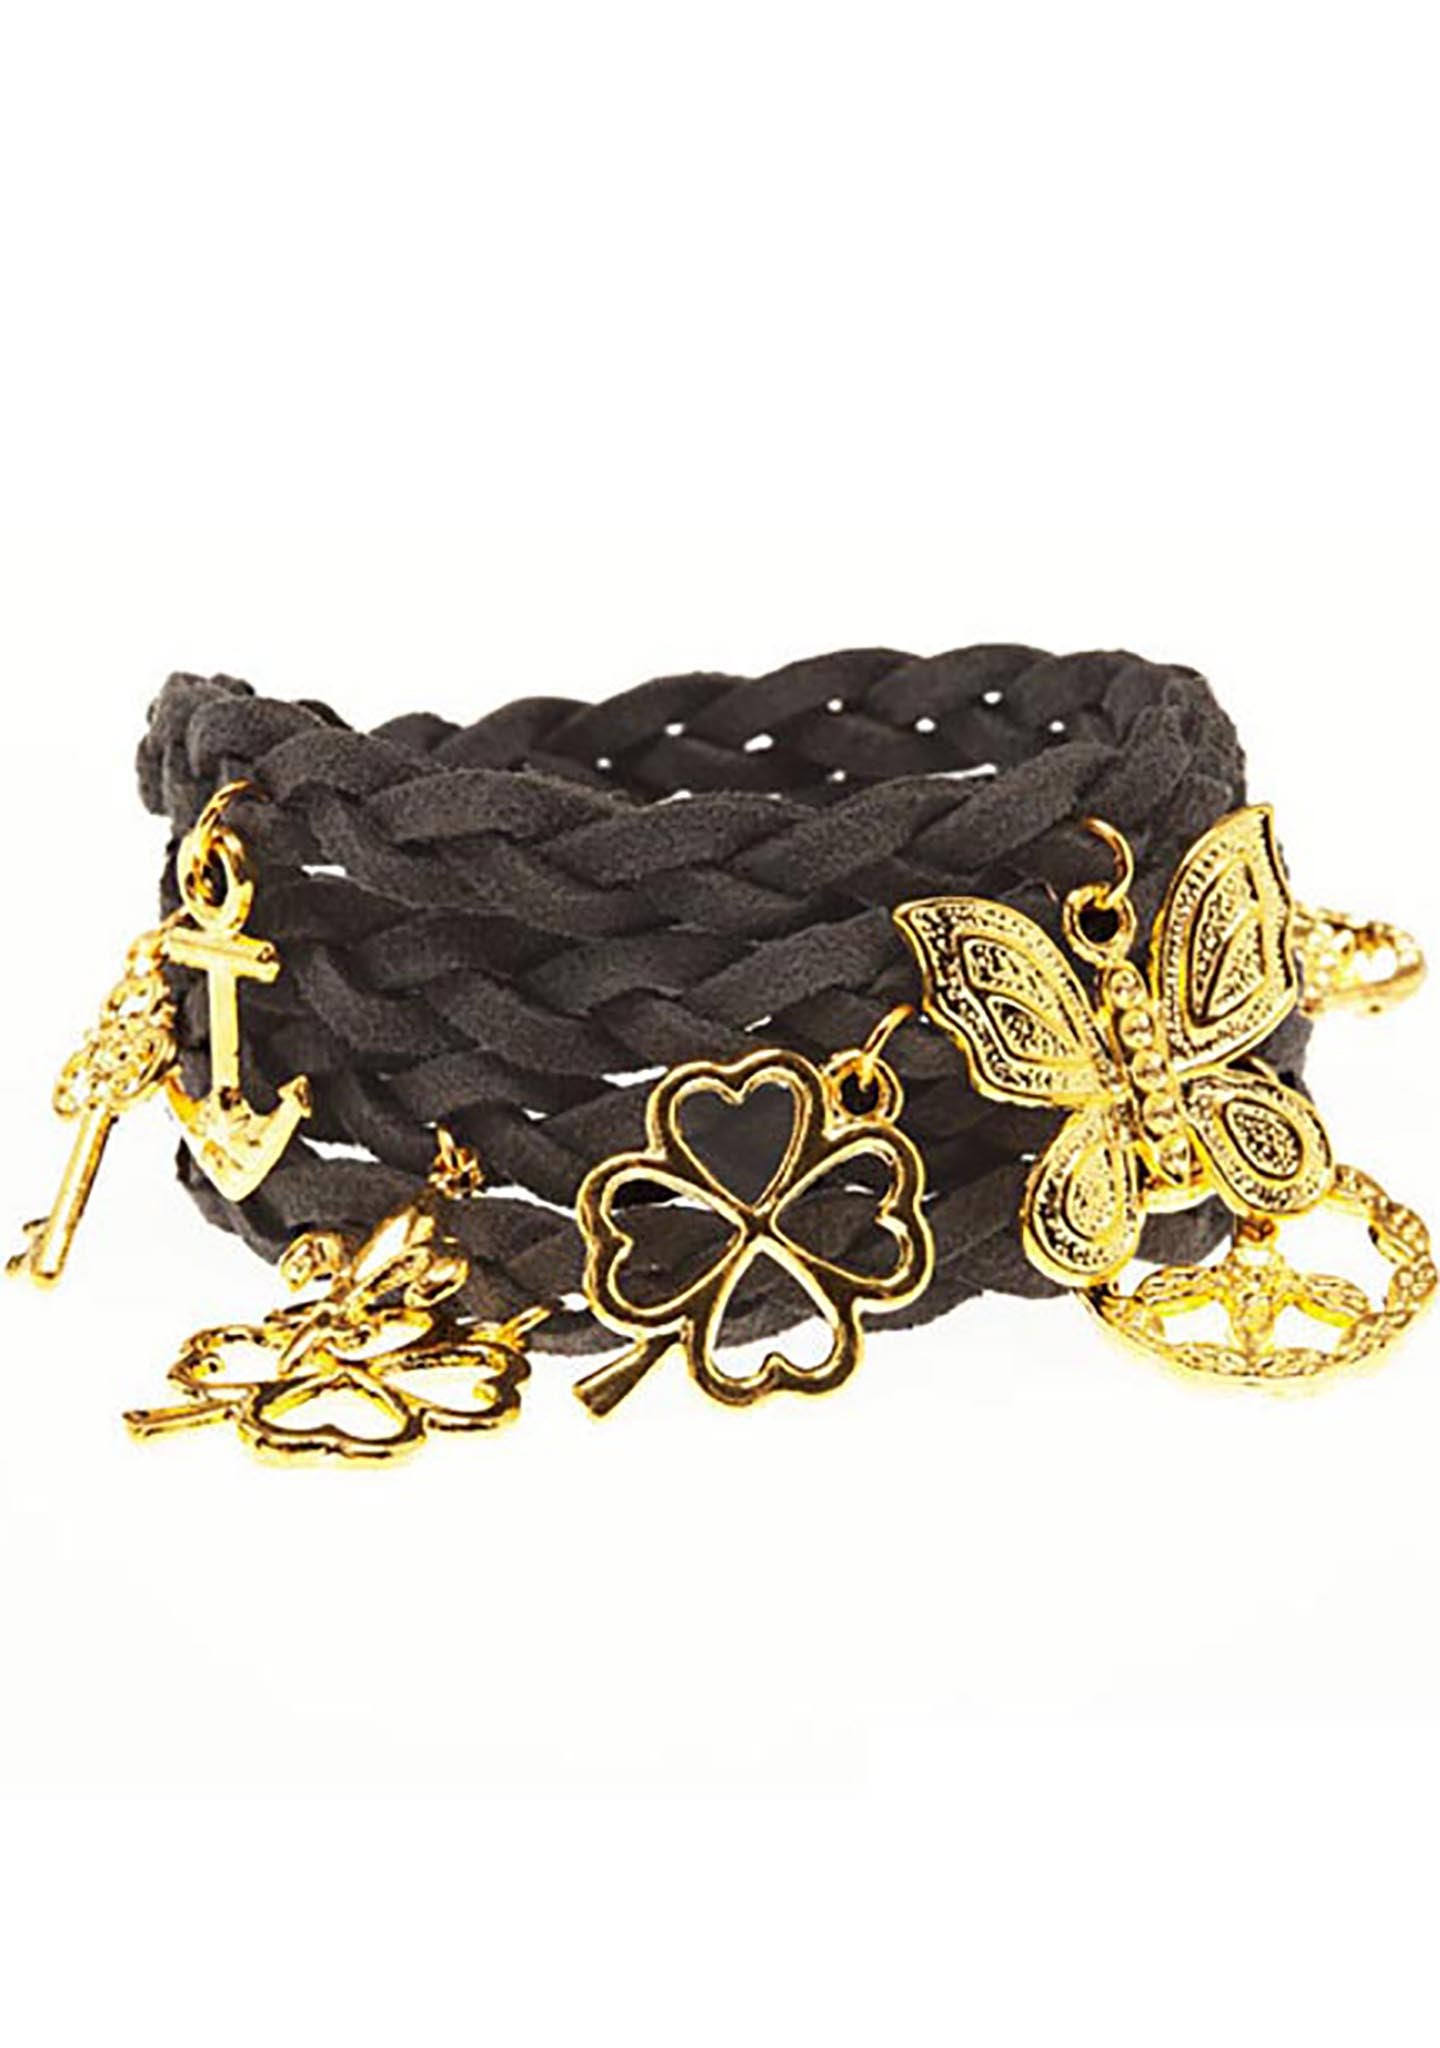 Timi Suede Wrap Charm Bracelet in Dark Grey/Gold